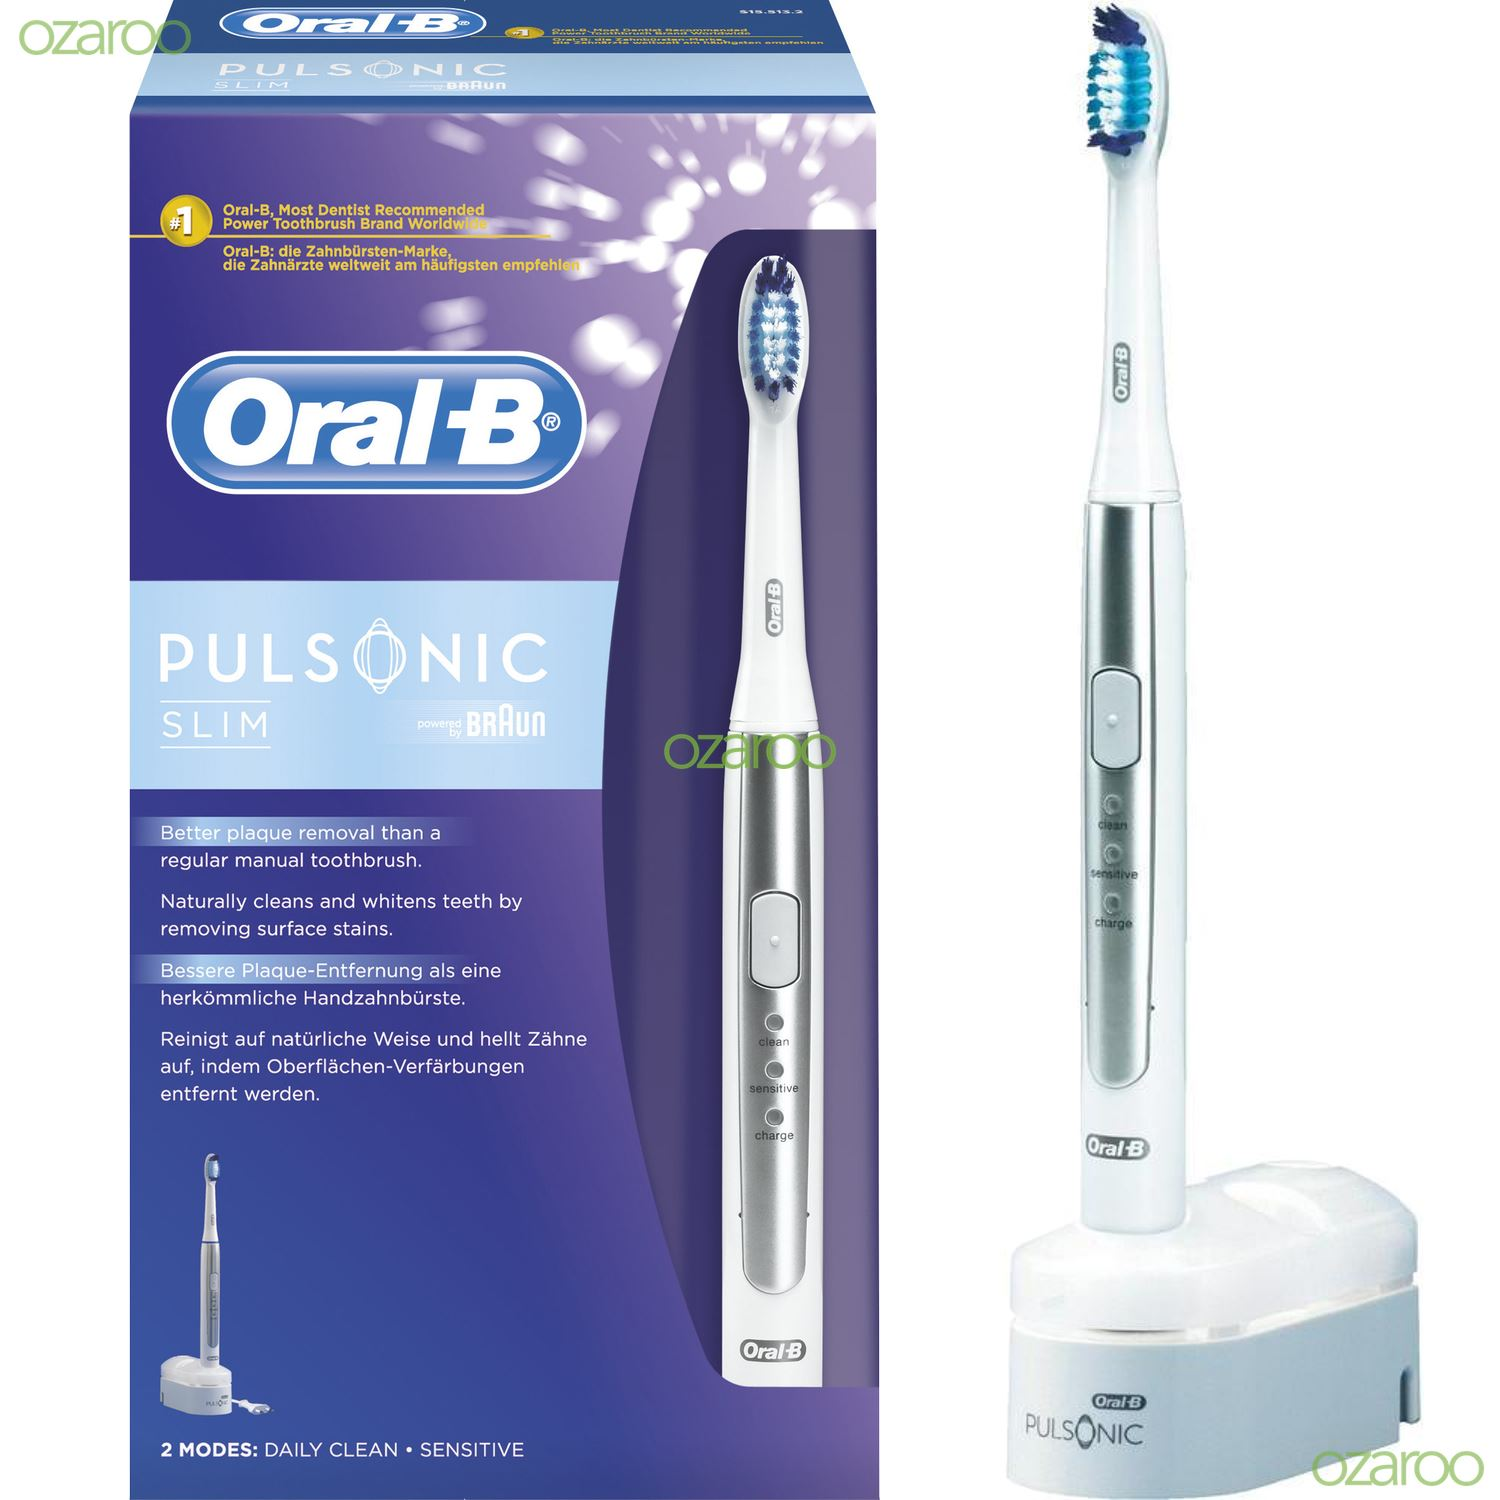 Apologise that, braun and oral b impossible